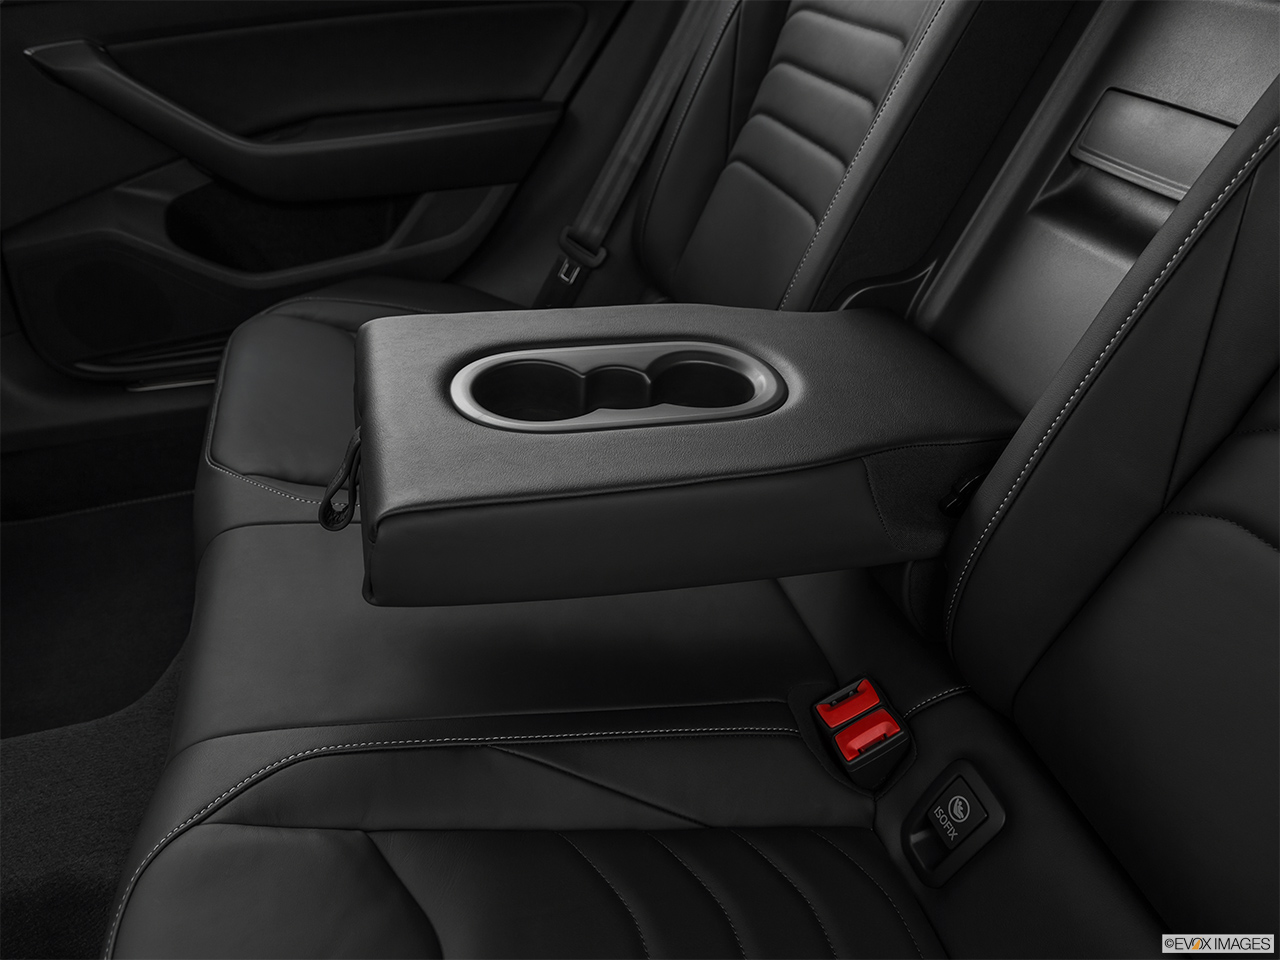 2019 Volkswagen Arteon SEL Premium  R-Line Rear center console with closed lid from driver's side looking down.